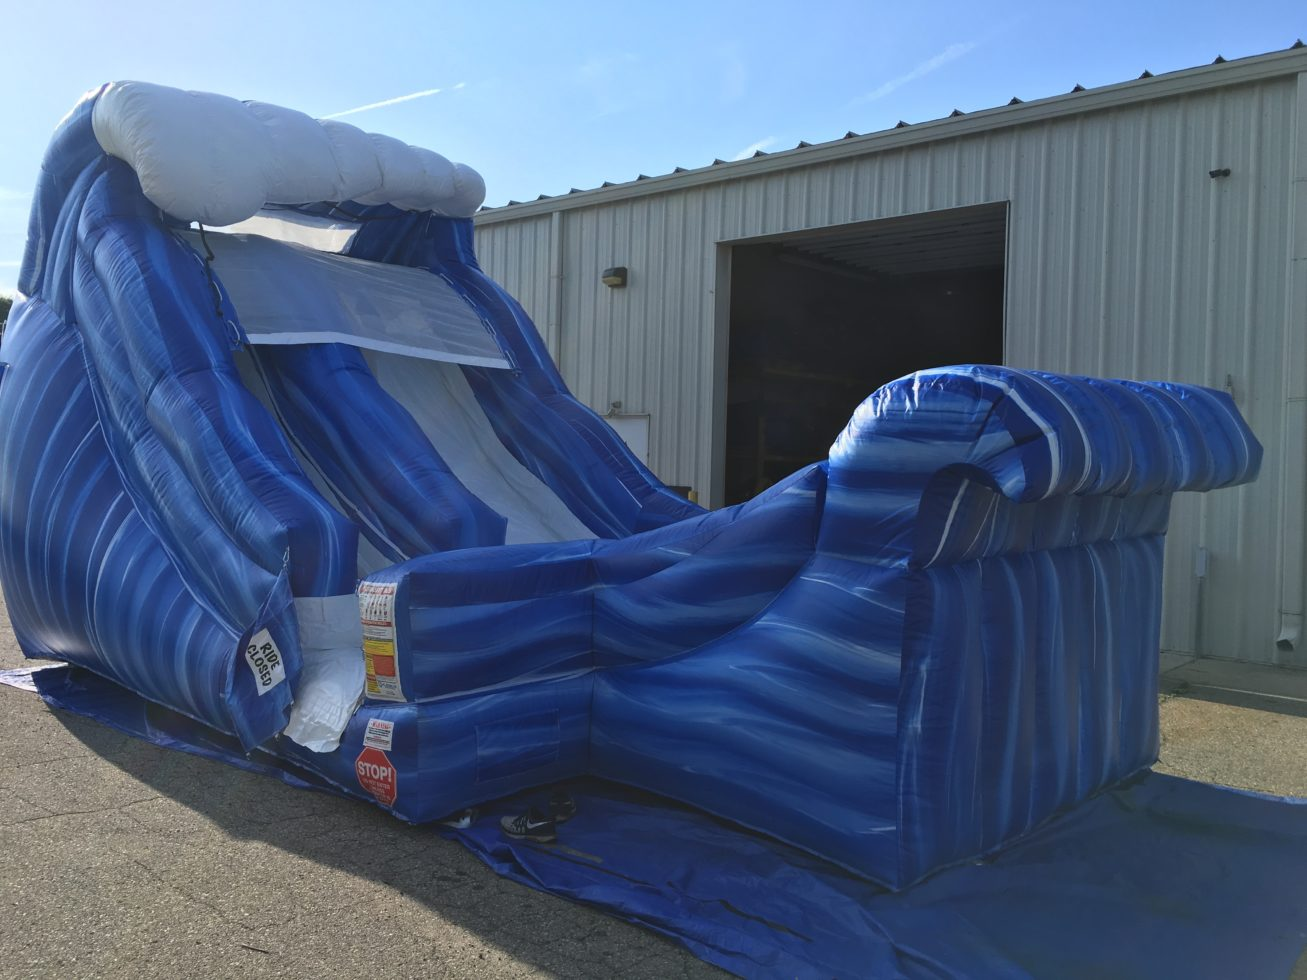 Wave waterslide setup outside